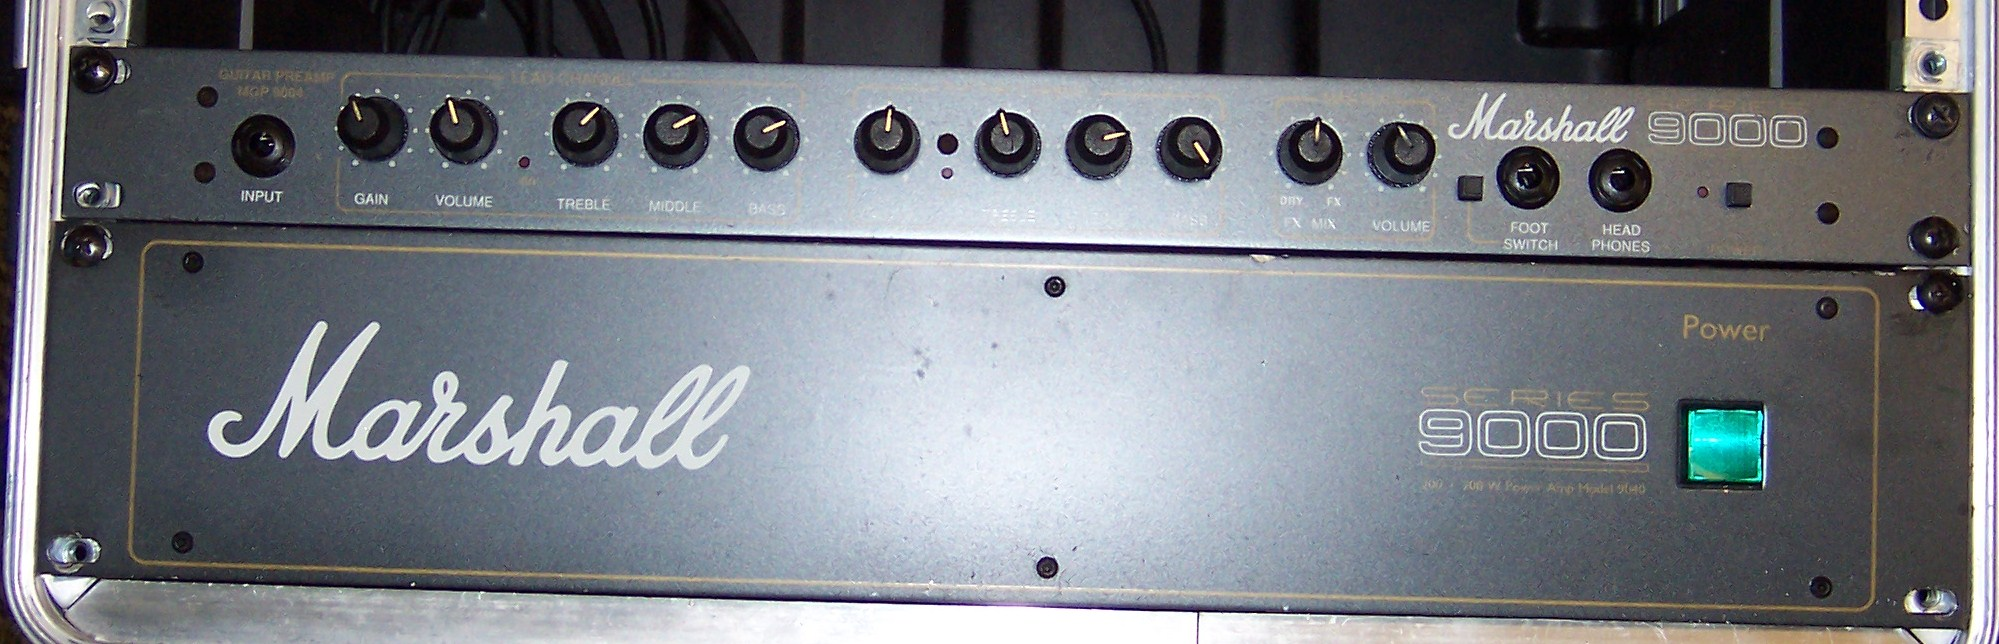 Marshall Preamp Mooer Micro 002 Uk Gold 900 Based On Jcm900 Power Amp Amps Preamps Axeshop Inc 1999x644